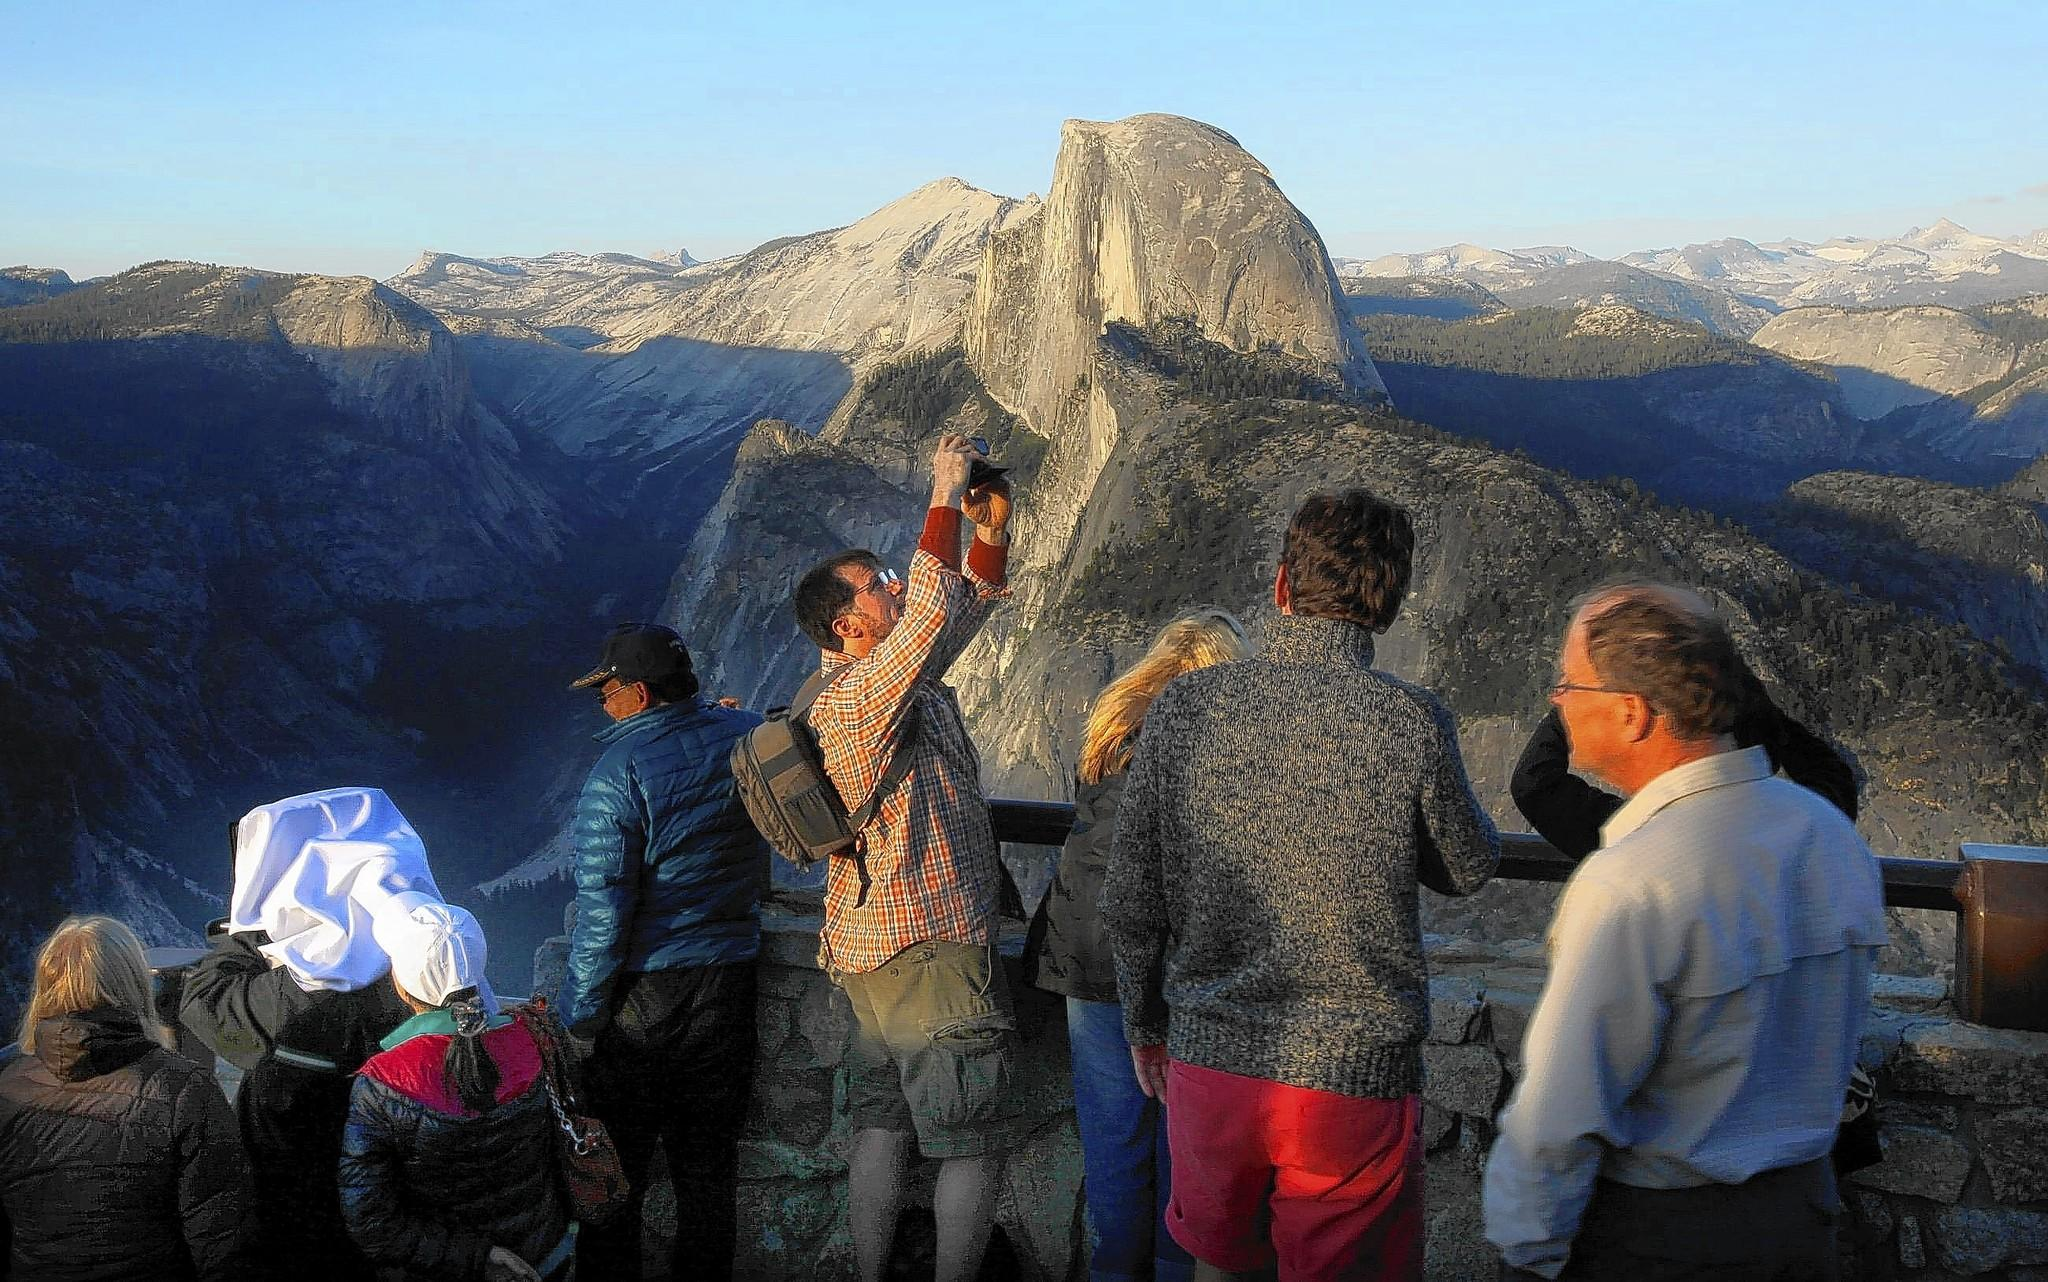 Visitors to Glacier Point aim their cameras and their attention to the famous Half Dome in Yosemite National Park in May 2013.